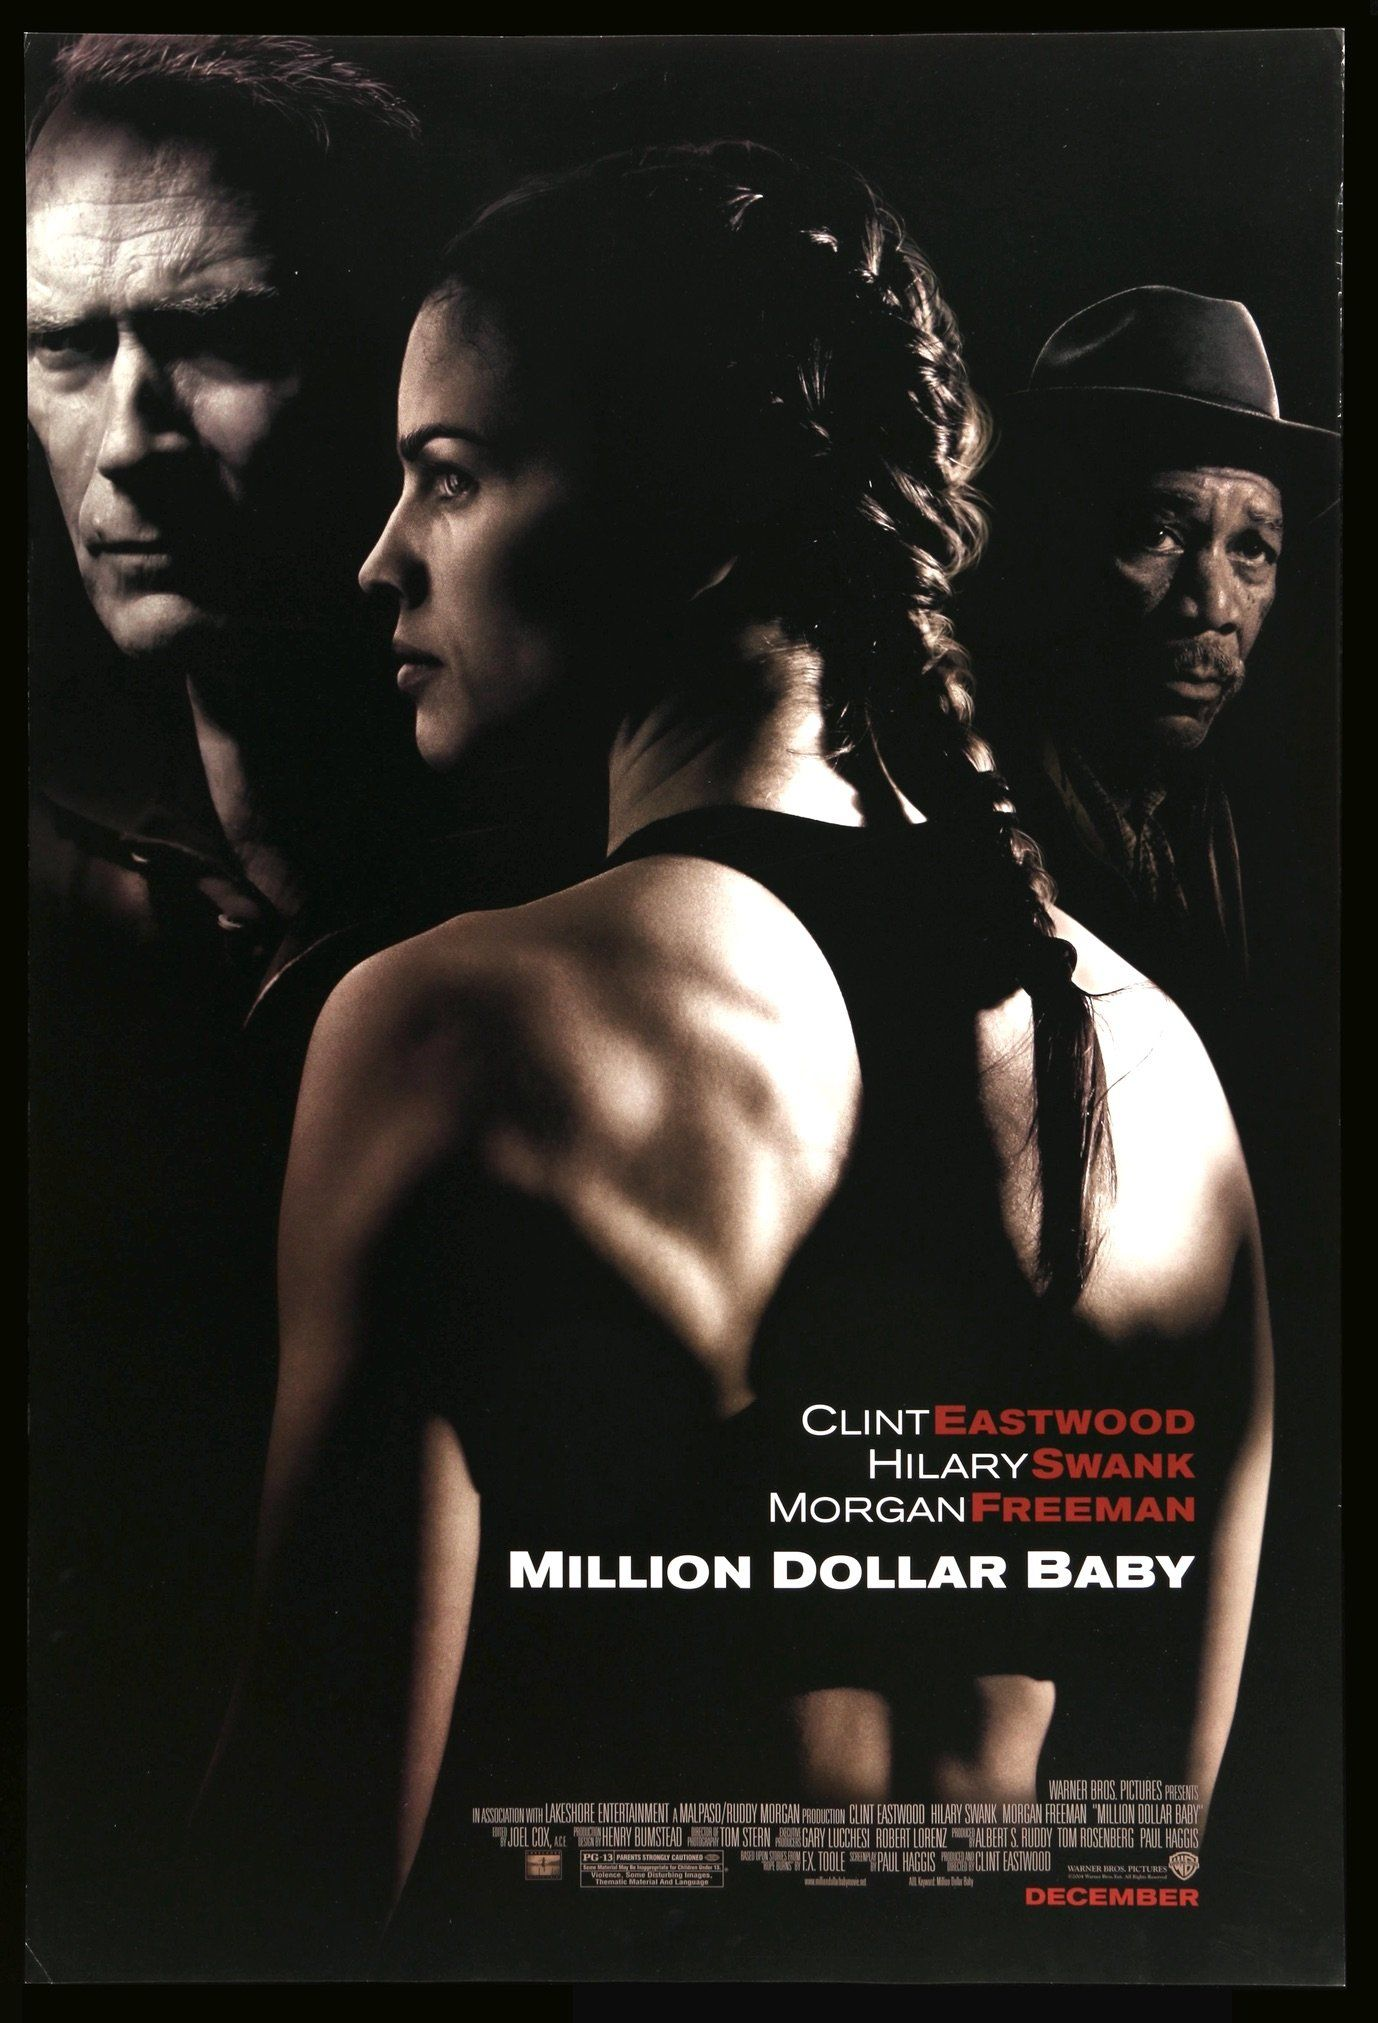 Million Dollar Baby (2004) in 2020 Clint eastwood movies